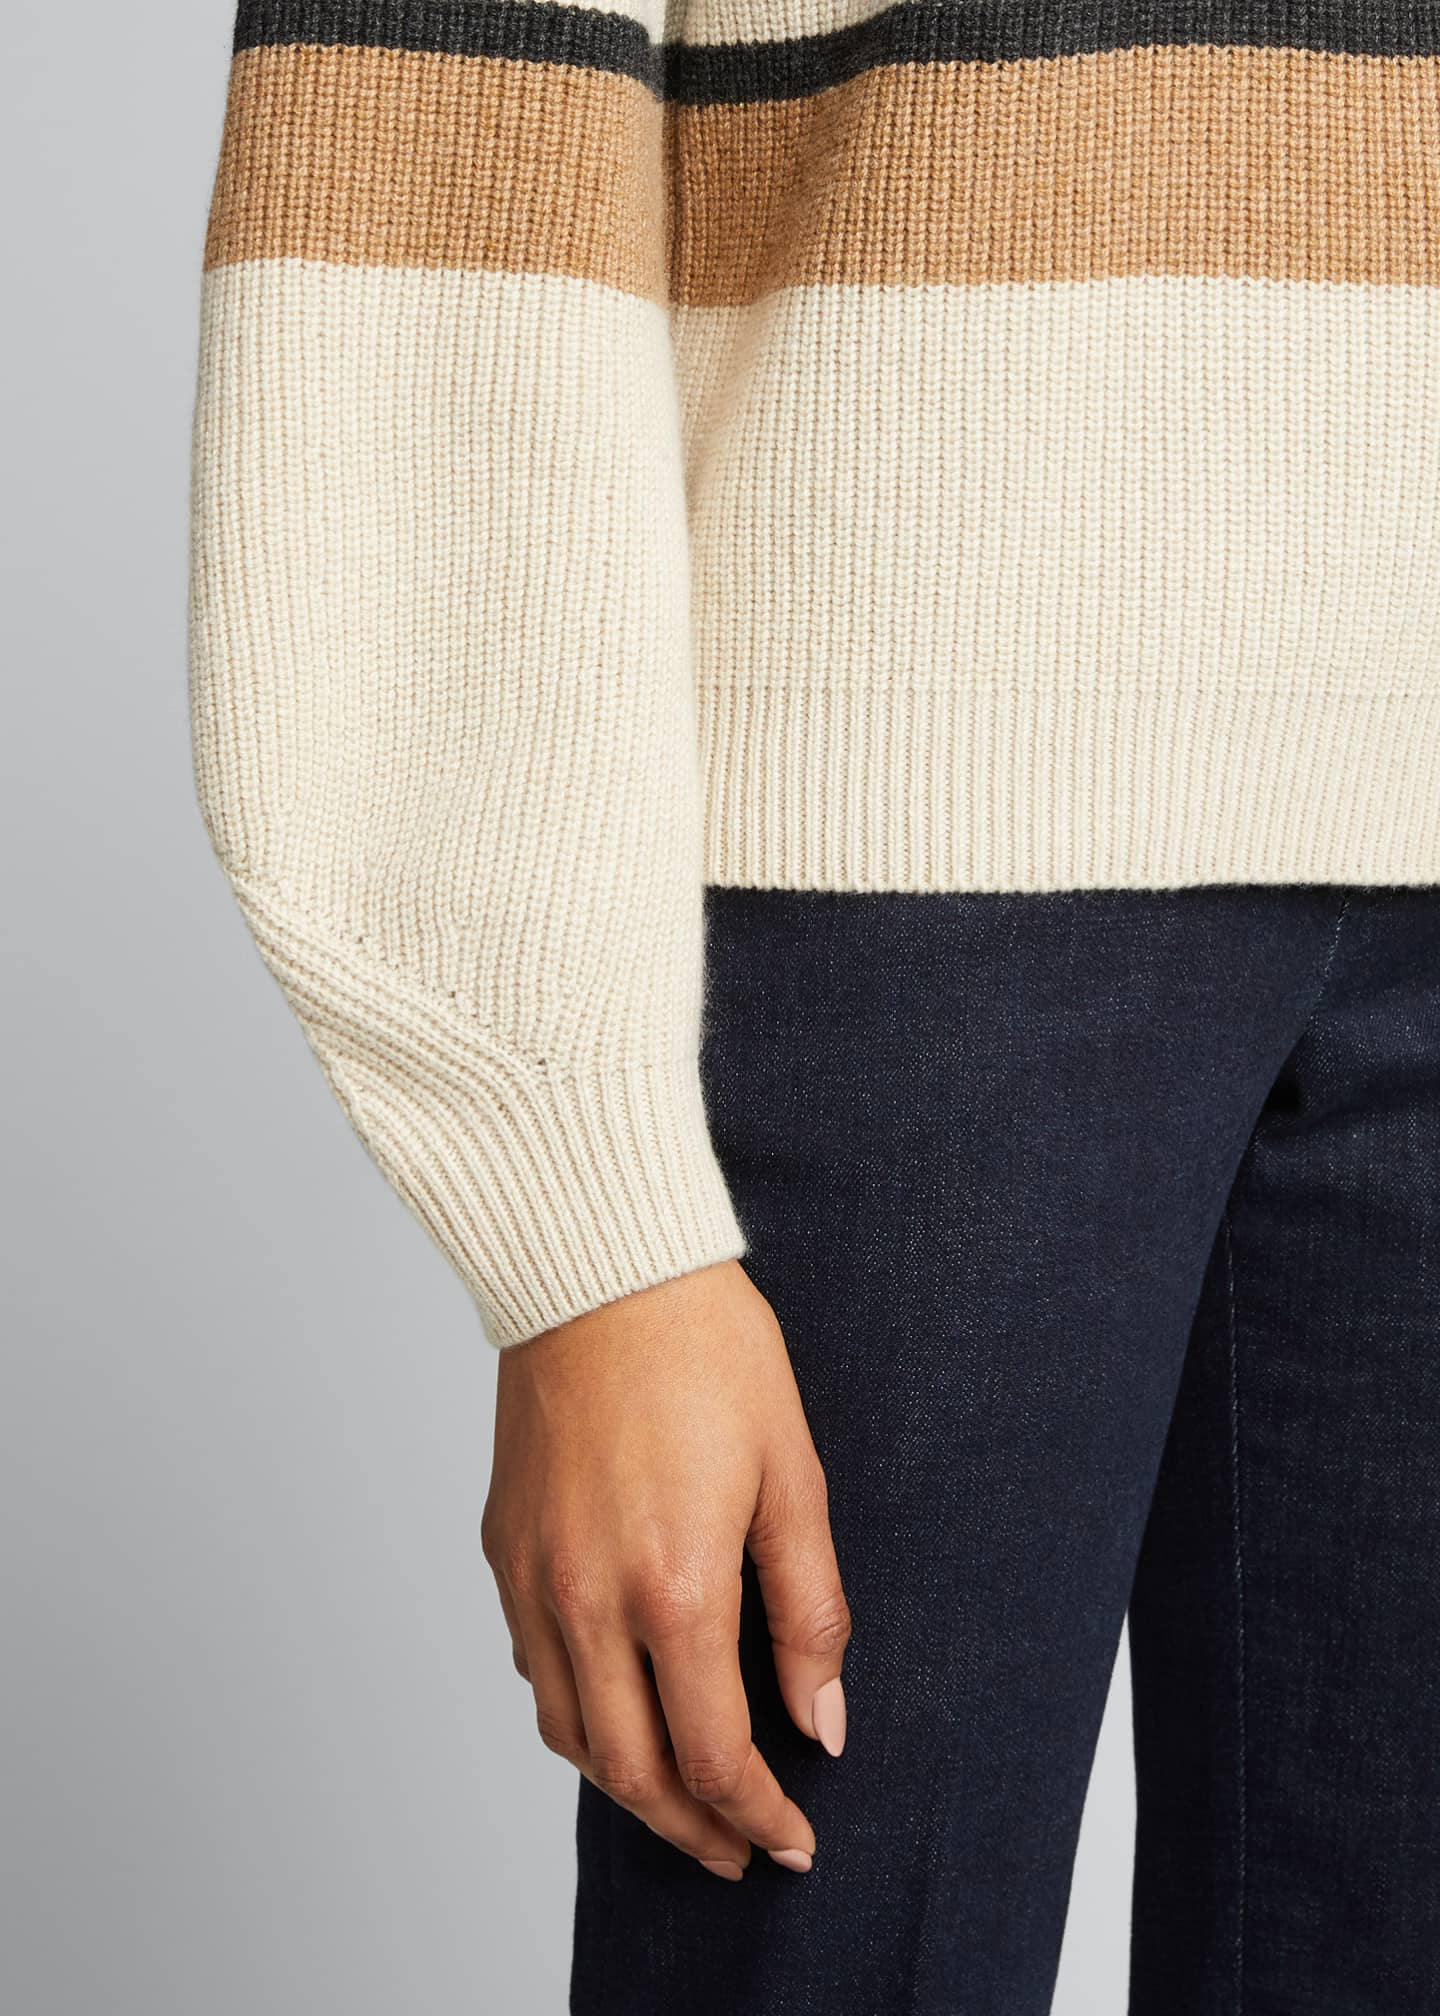 Image 4 of 4: Rigato Lexington Striped Cashmere Sweater